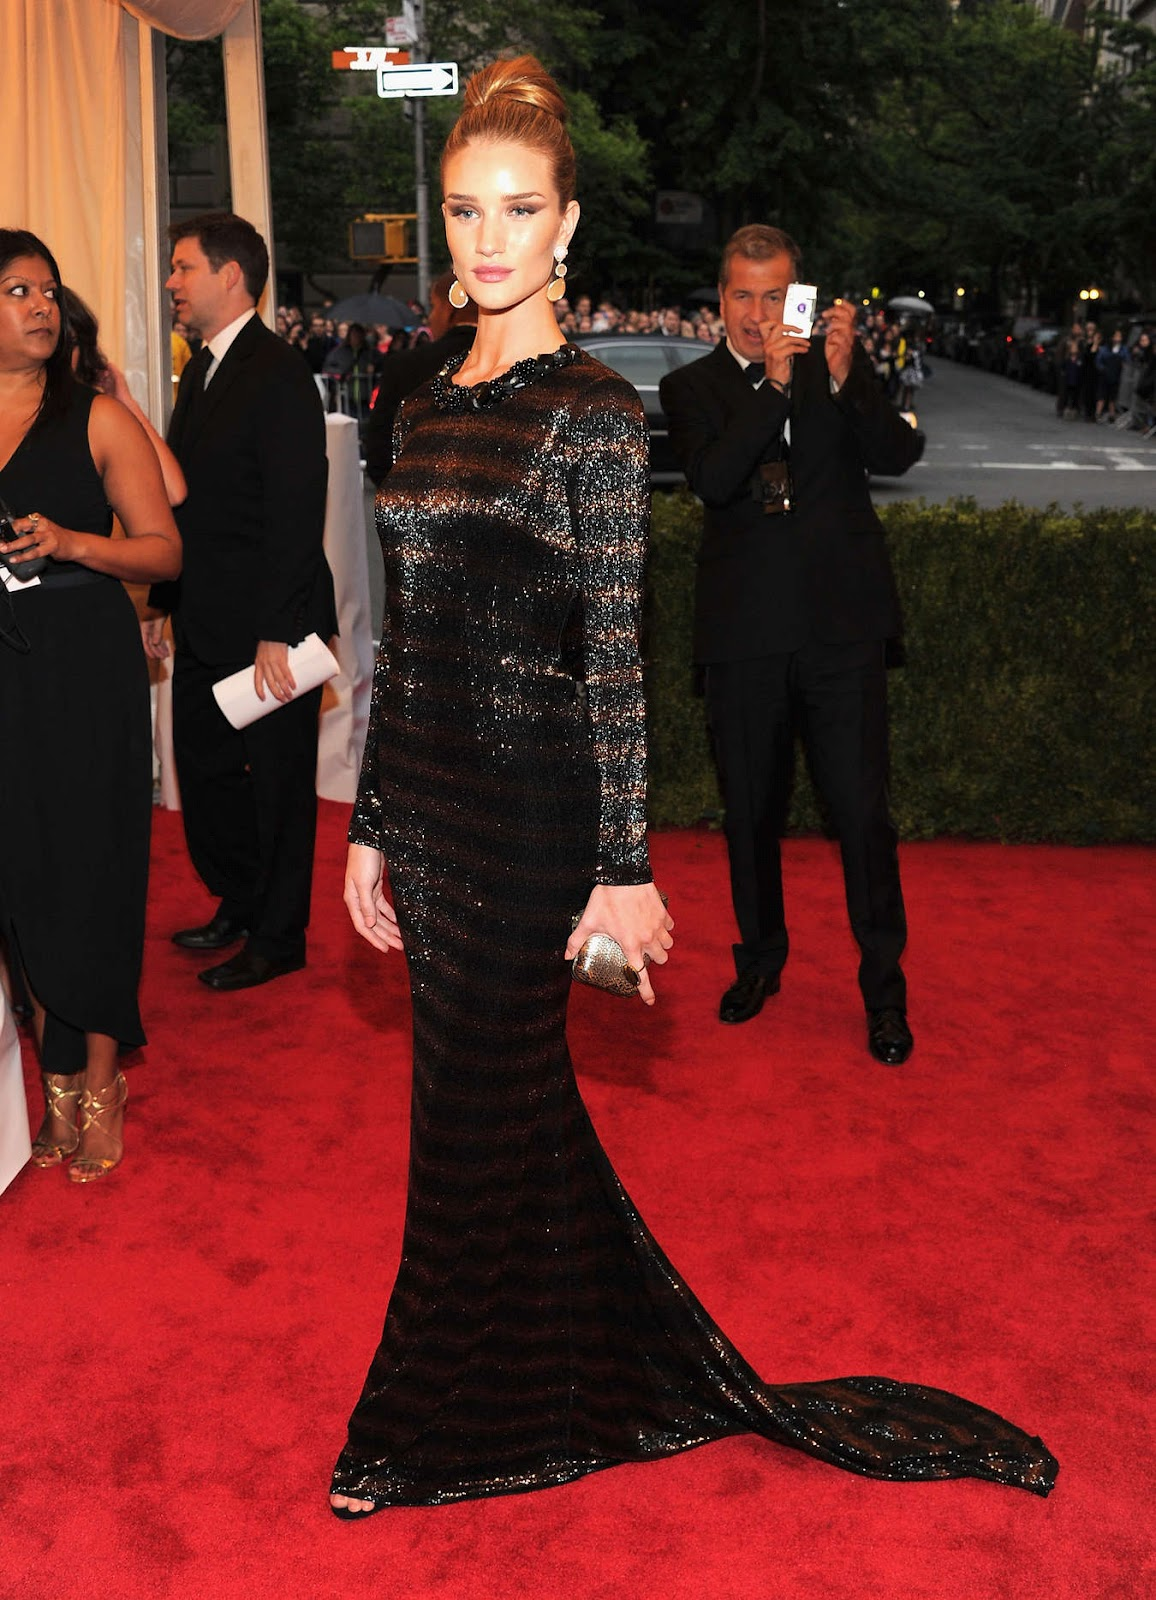 http://4.bp.blogspot.com/-vqFSOYOuP8A/T8Unrv400sI/AAAAAAAAC7o/gRwFjd0FTVY/s1600/Rosie+Huntington+Whiteley+-+Met+Costume+Institute+Gala+2012-04.jpg